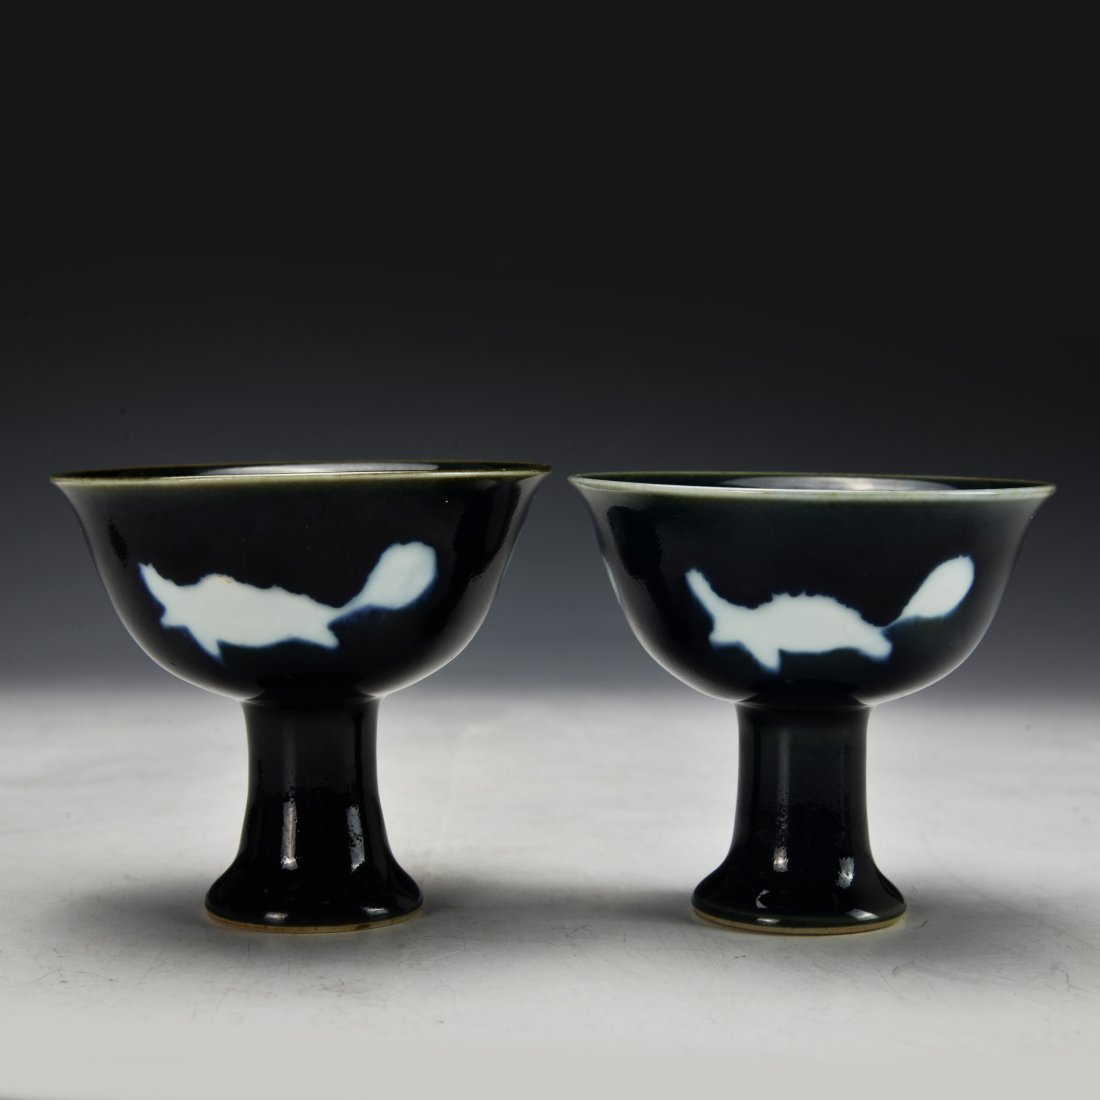 A Pair of Chinese Antique High Stem Bowl